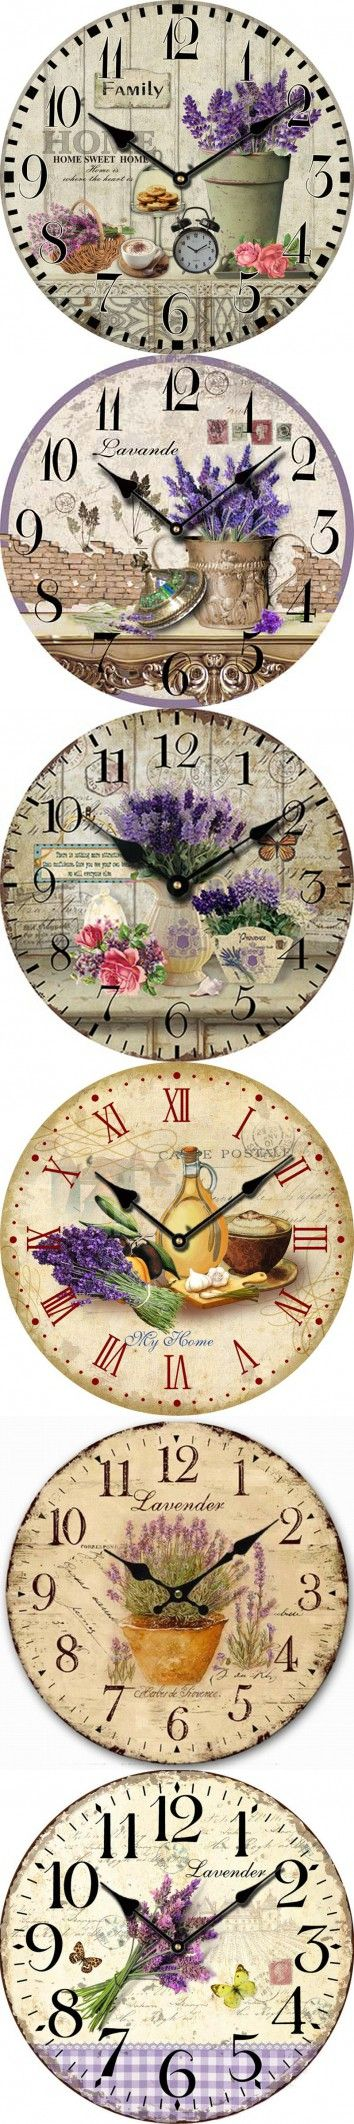 Lavender Large Decorative Wall Clocks Modern Design Living Room Antique Wooden Vintage Wall Clock Home Decor Fashion Rustic $18.32